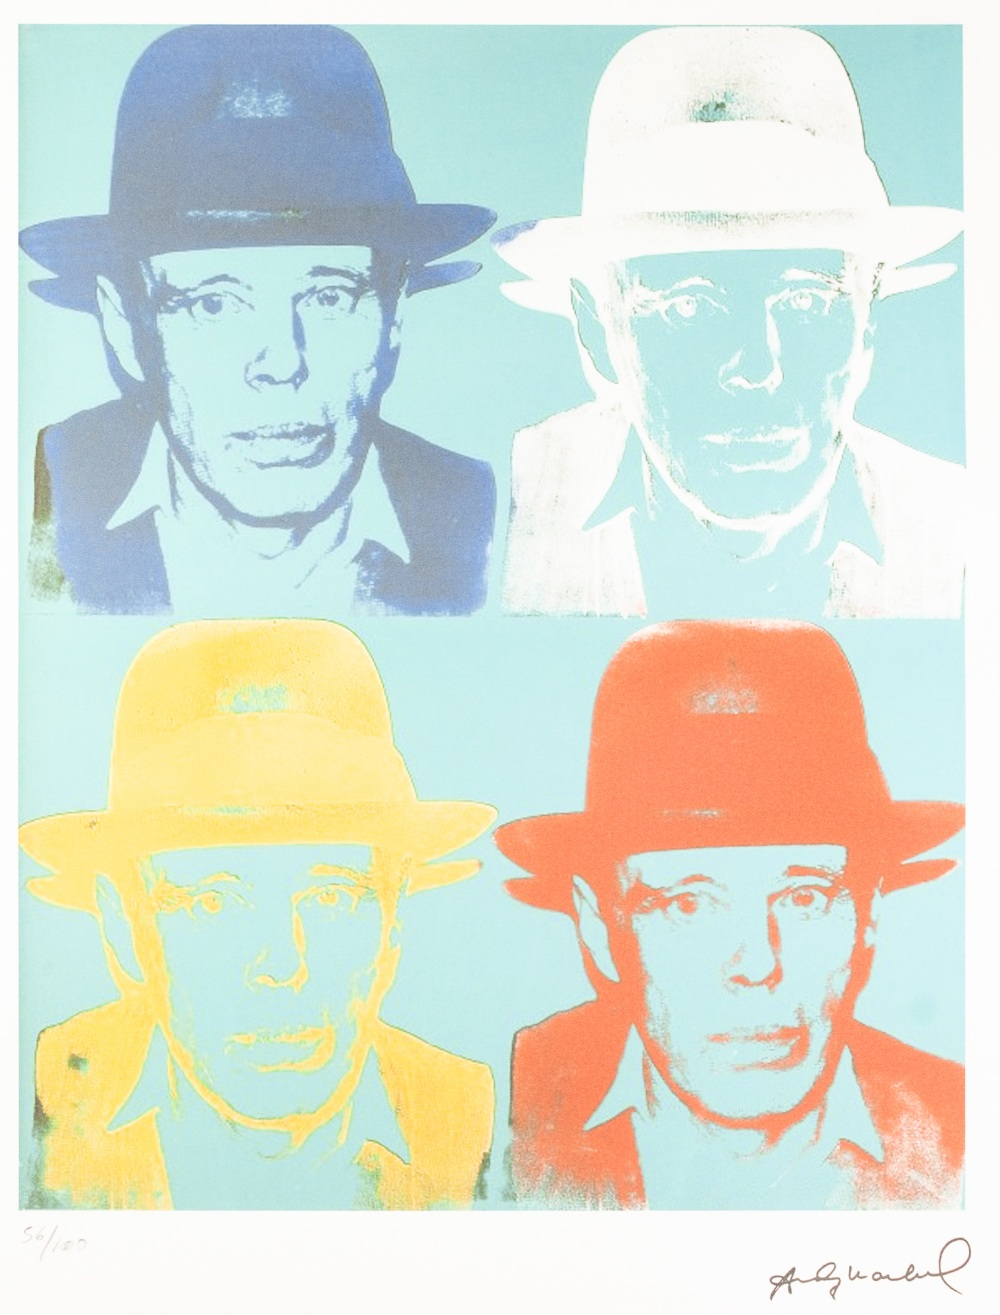 Lot 189 - ANDY WARHOL (AMERICAN 1928 - 1987) COLOURED LITHGRAPHIC PRINT ON ARCHES PAPER 'Four self potrait